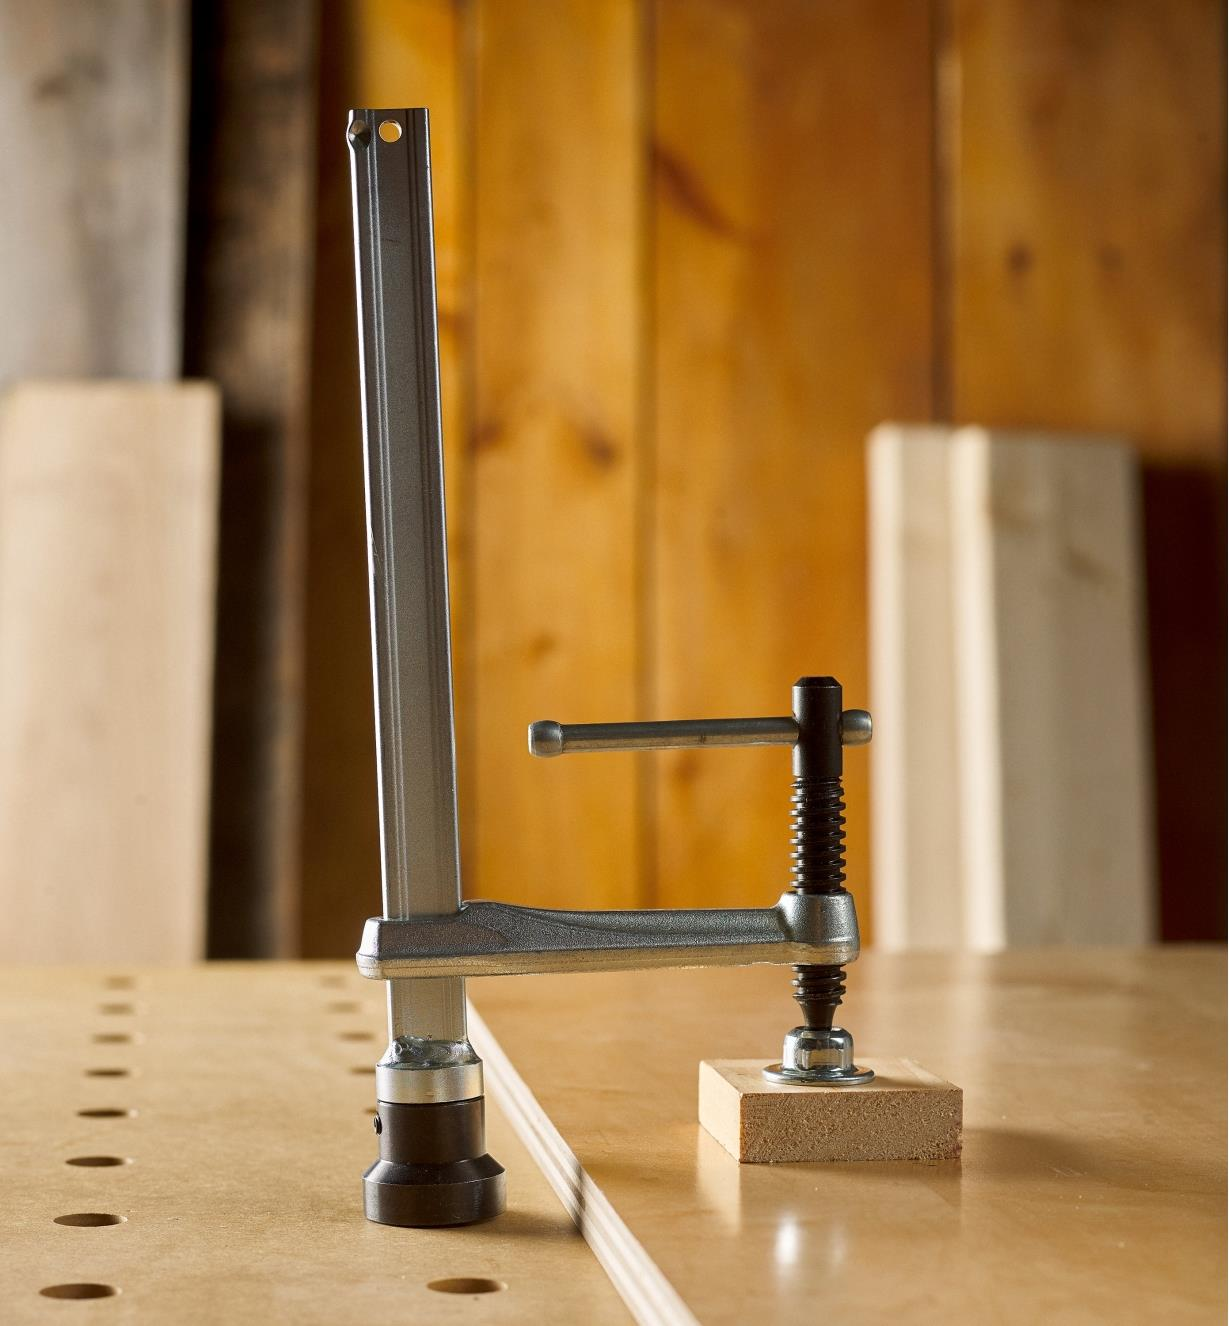 A Bessey hold-down clamp with a T-bar handle clamping veneer to a piece of plywood